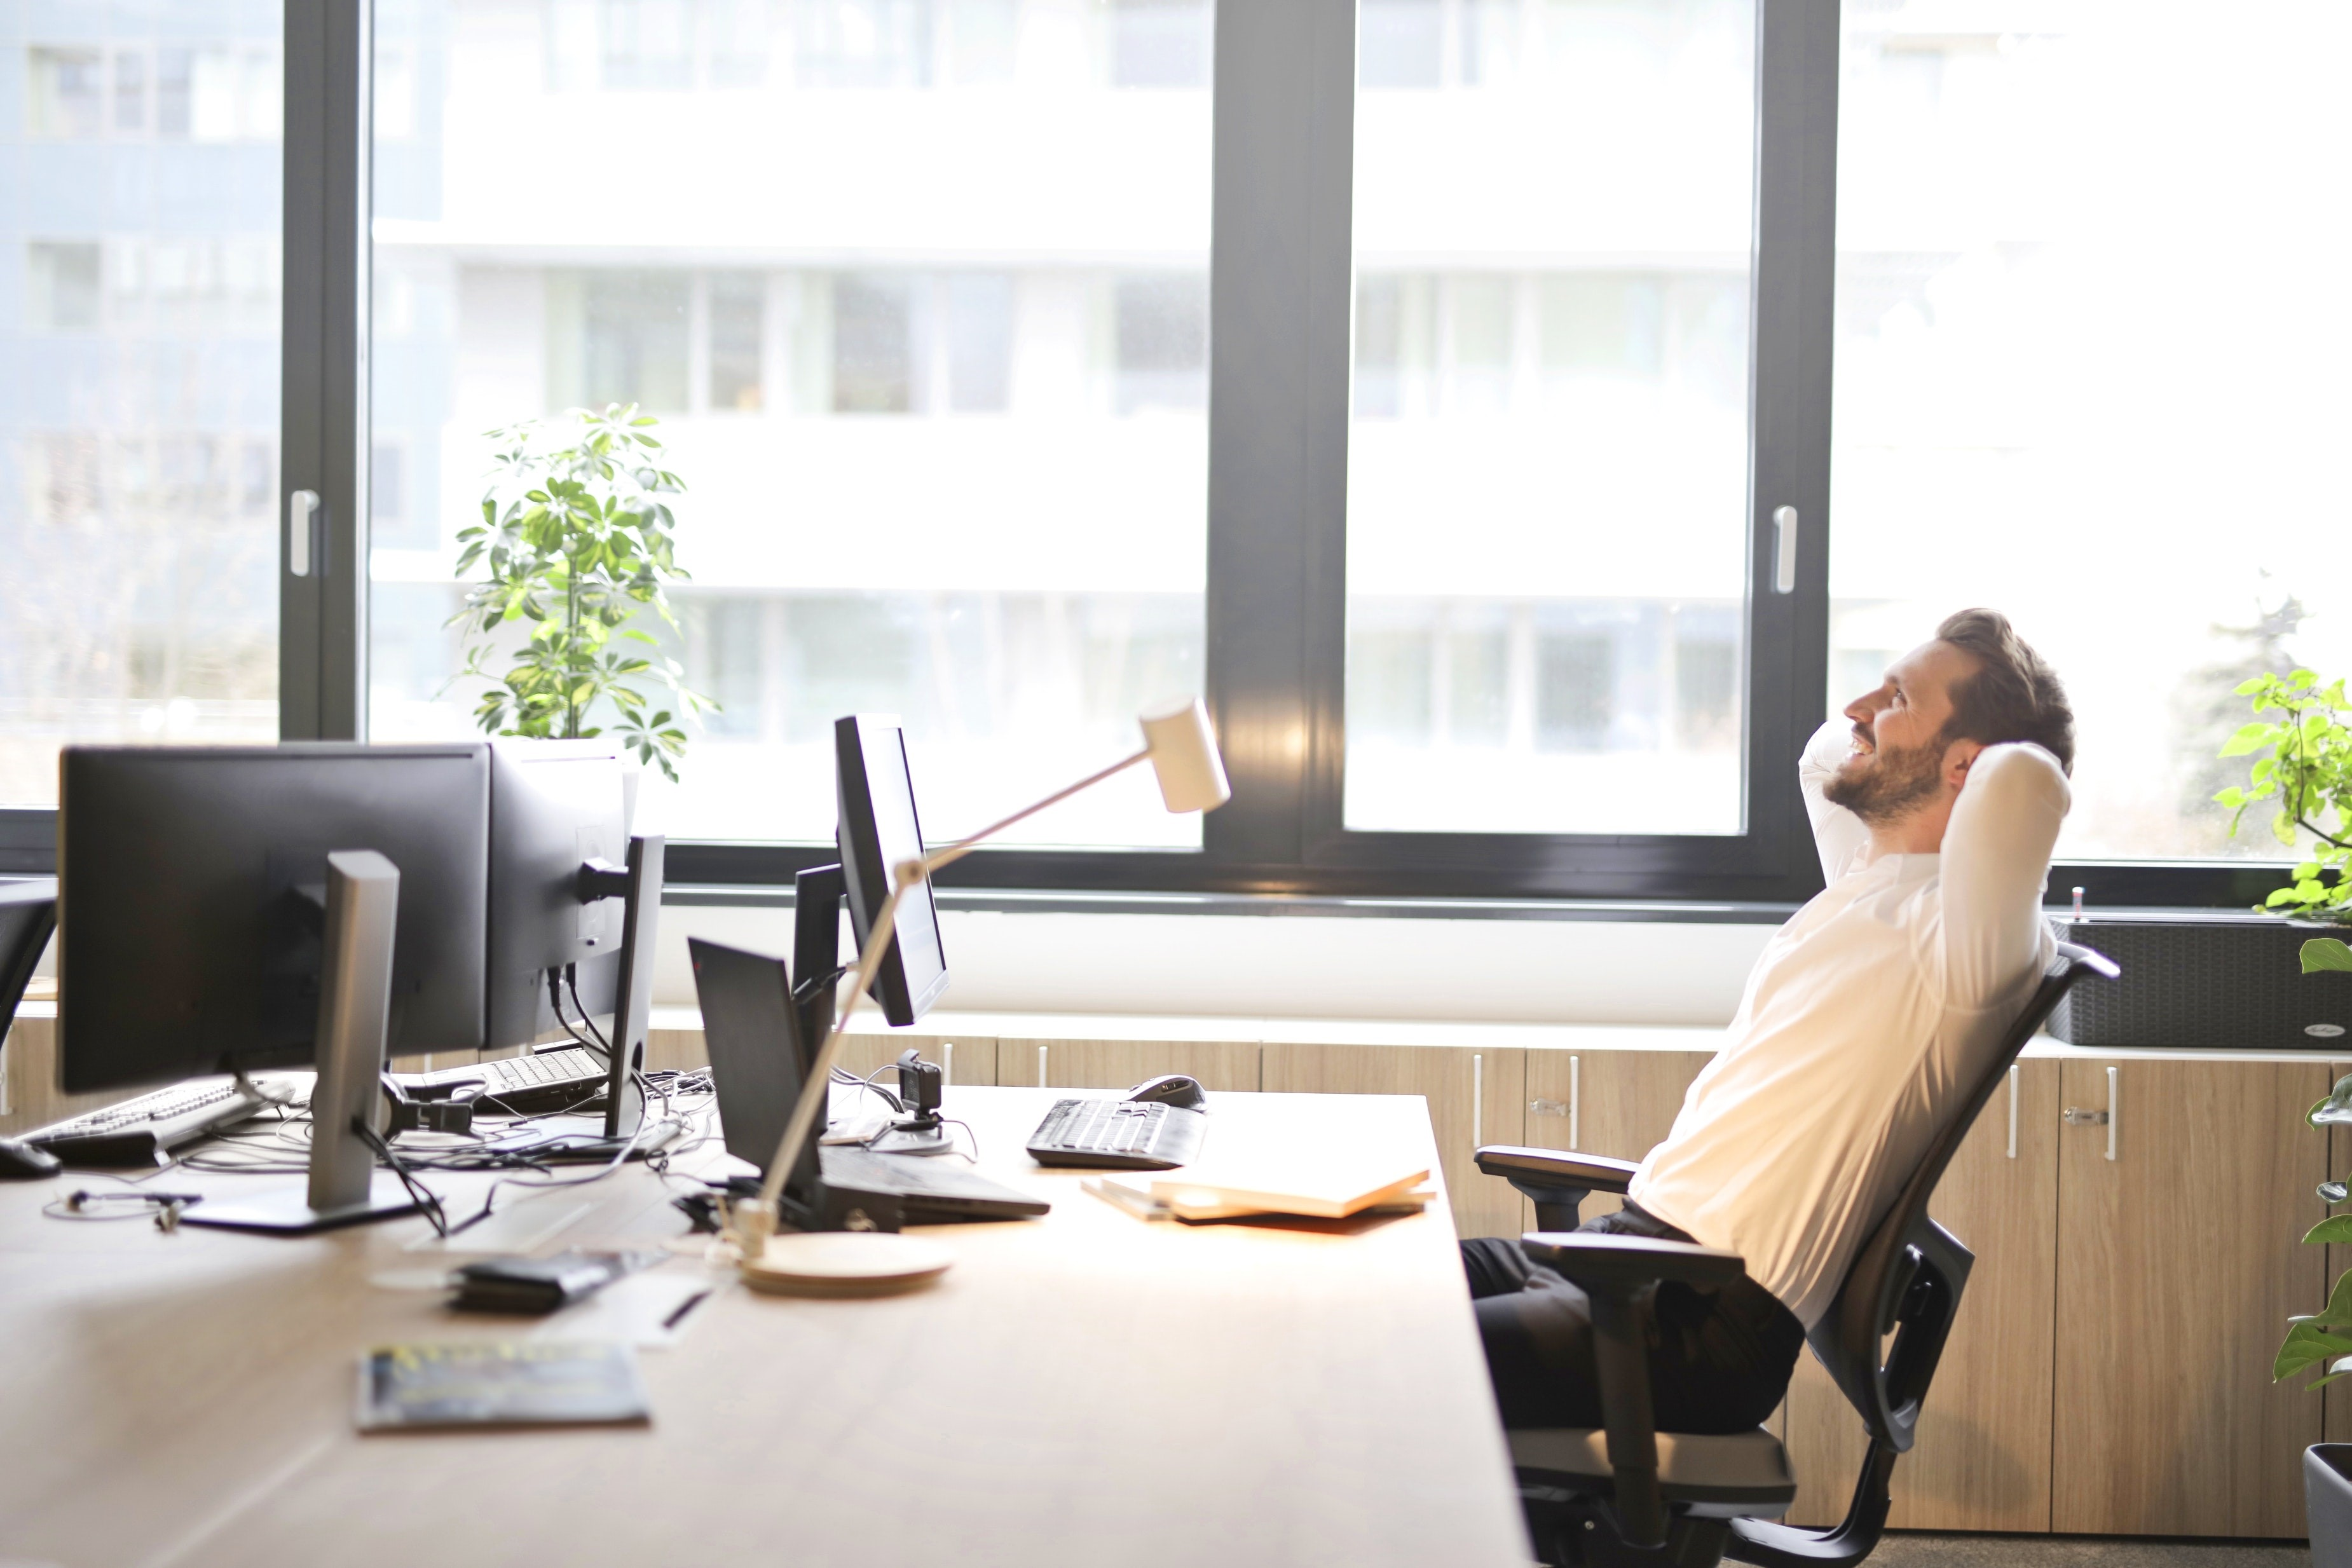 Ergonomic Features That Make Sleeping in an Office Chair Possible and Comfortable